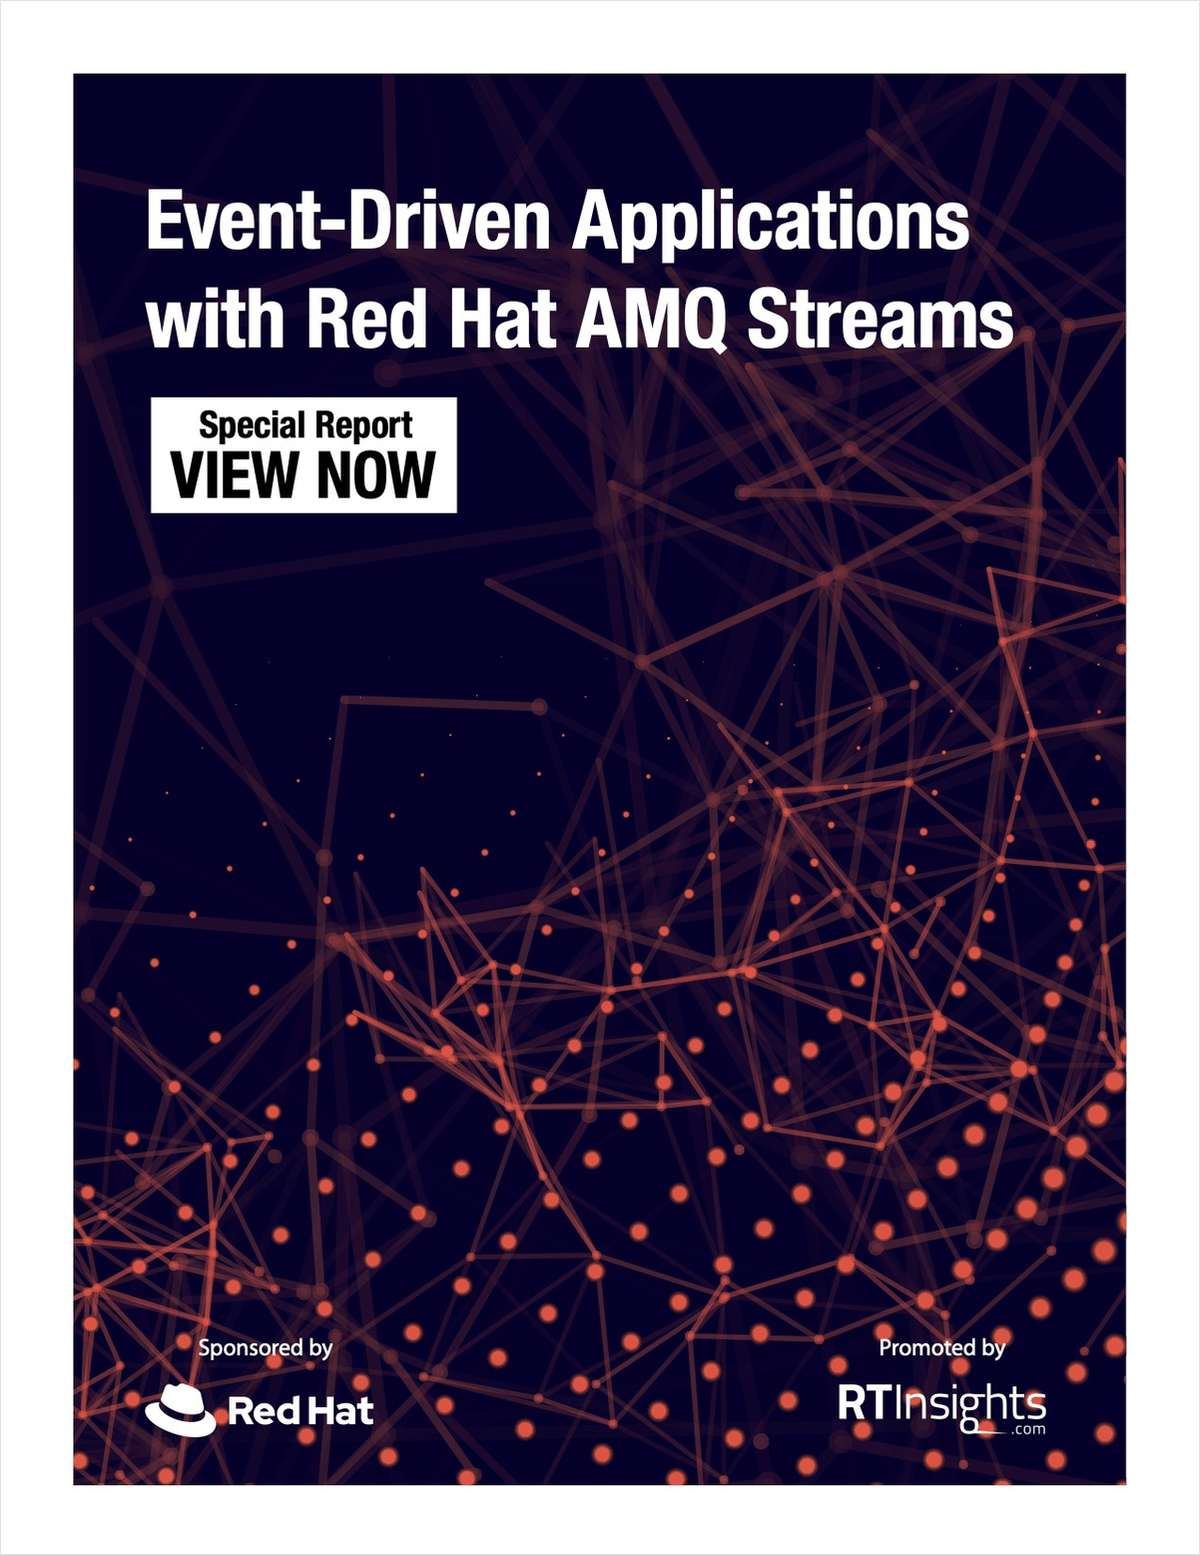 Event-Driven Applications with Red Hat AMQ Streams